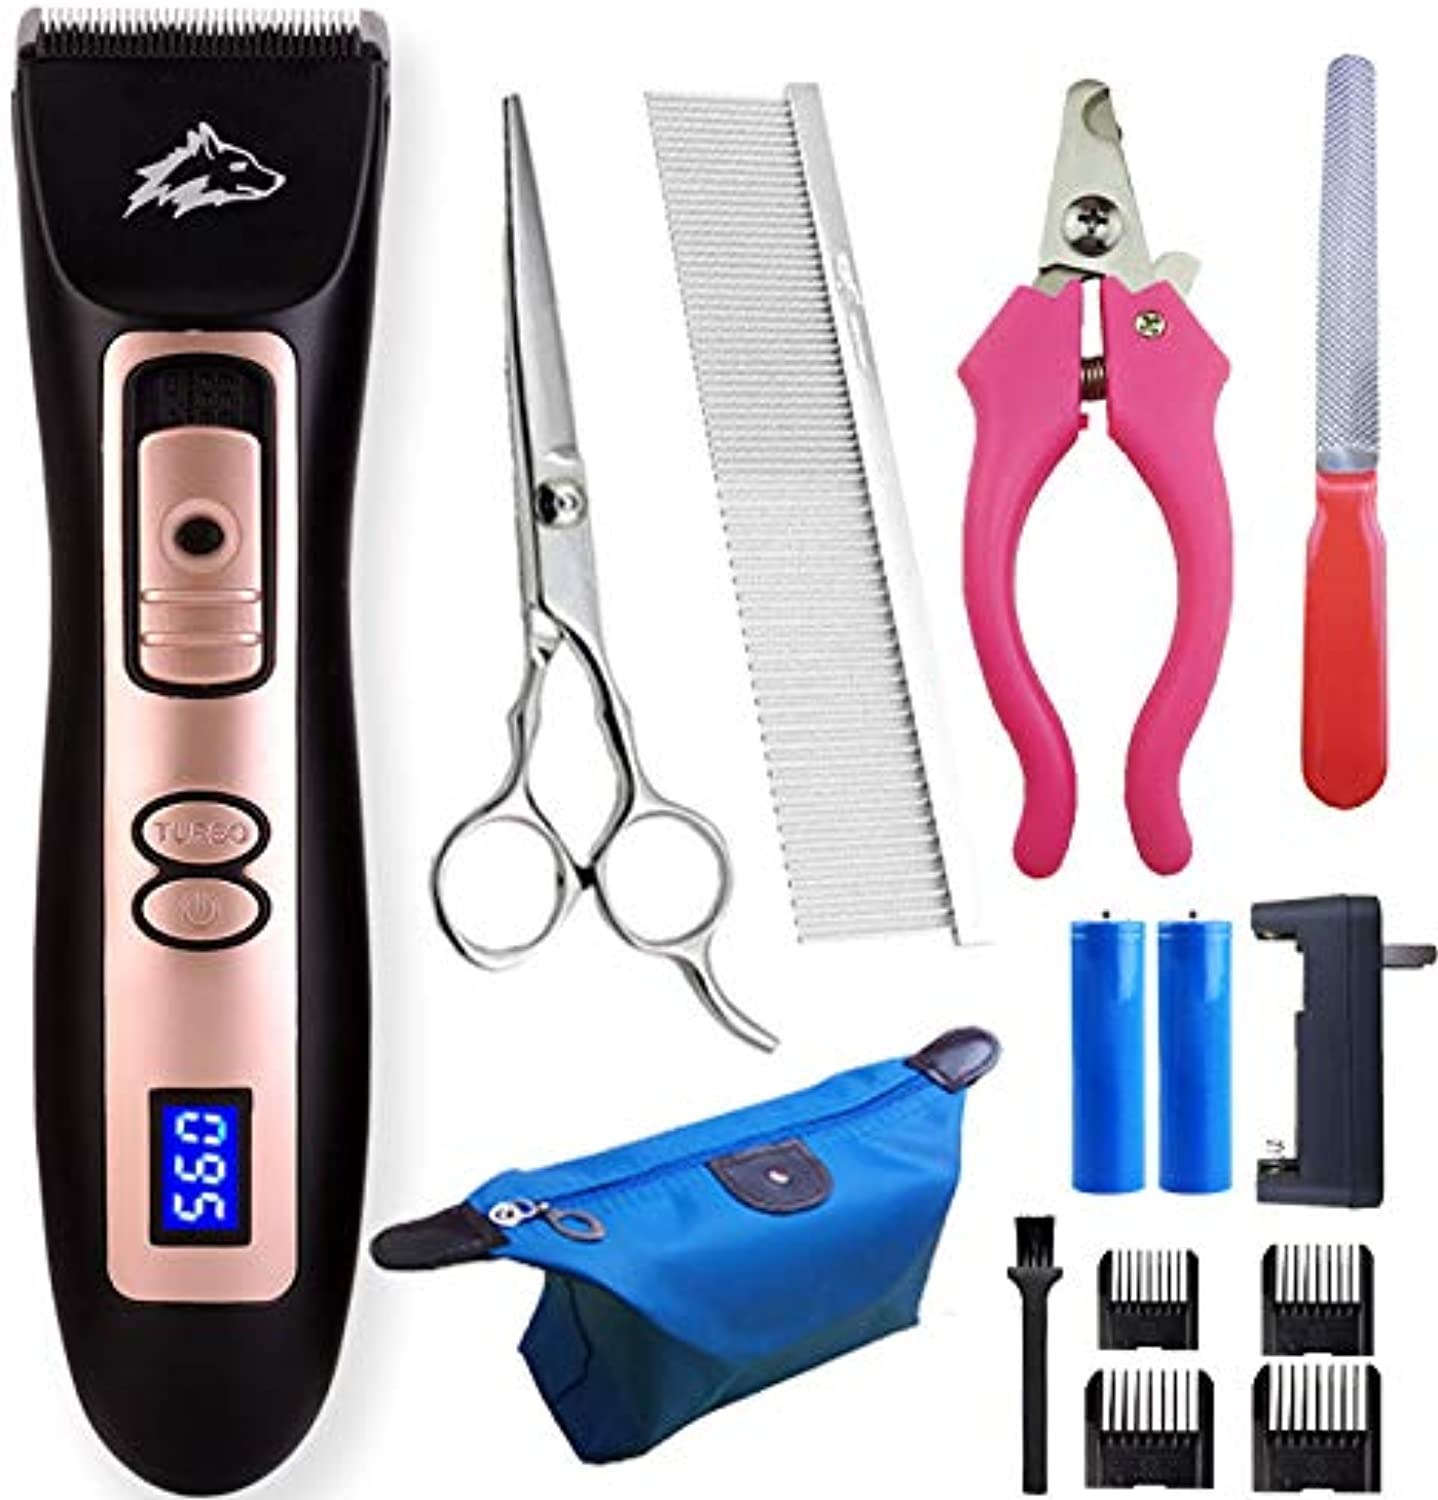 Dog Grooming Clippers Kit Low Noise Rechargeable Cordless Pet Clippers Professional Electric Dog Clippers with Comb Guides Scissors